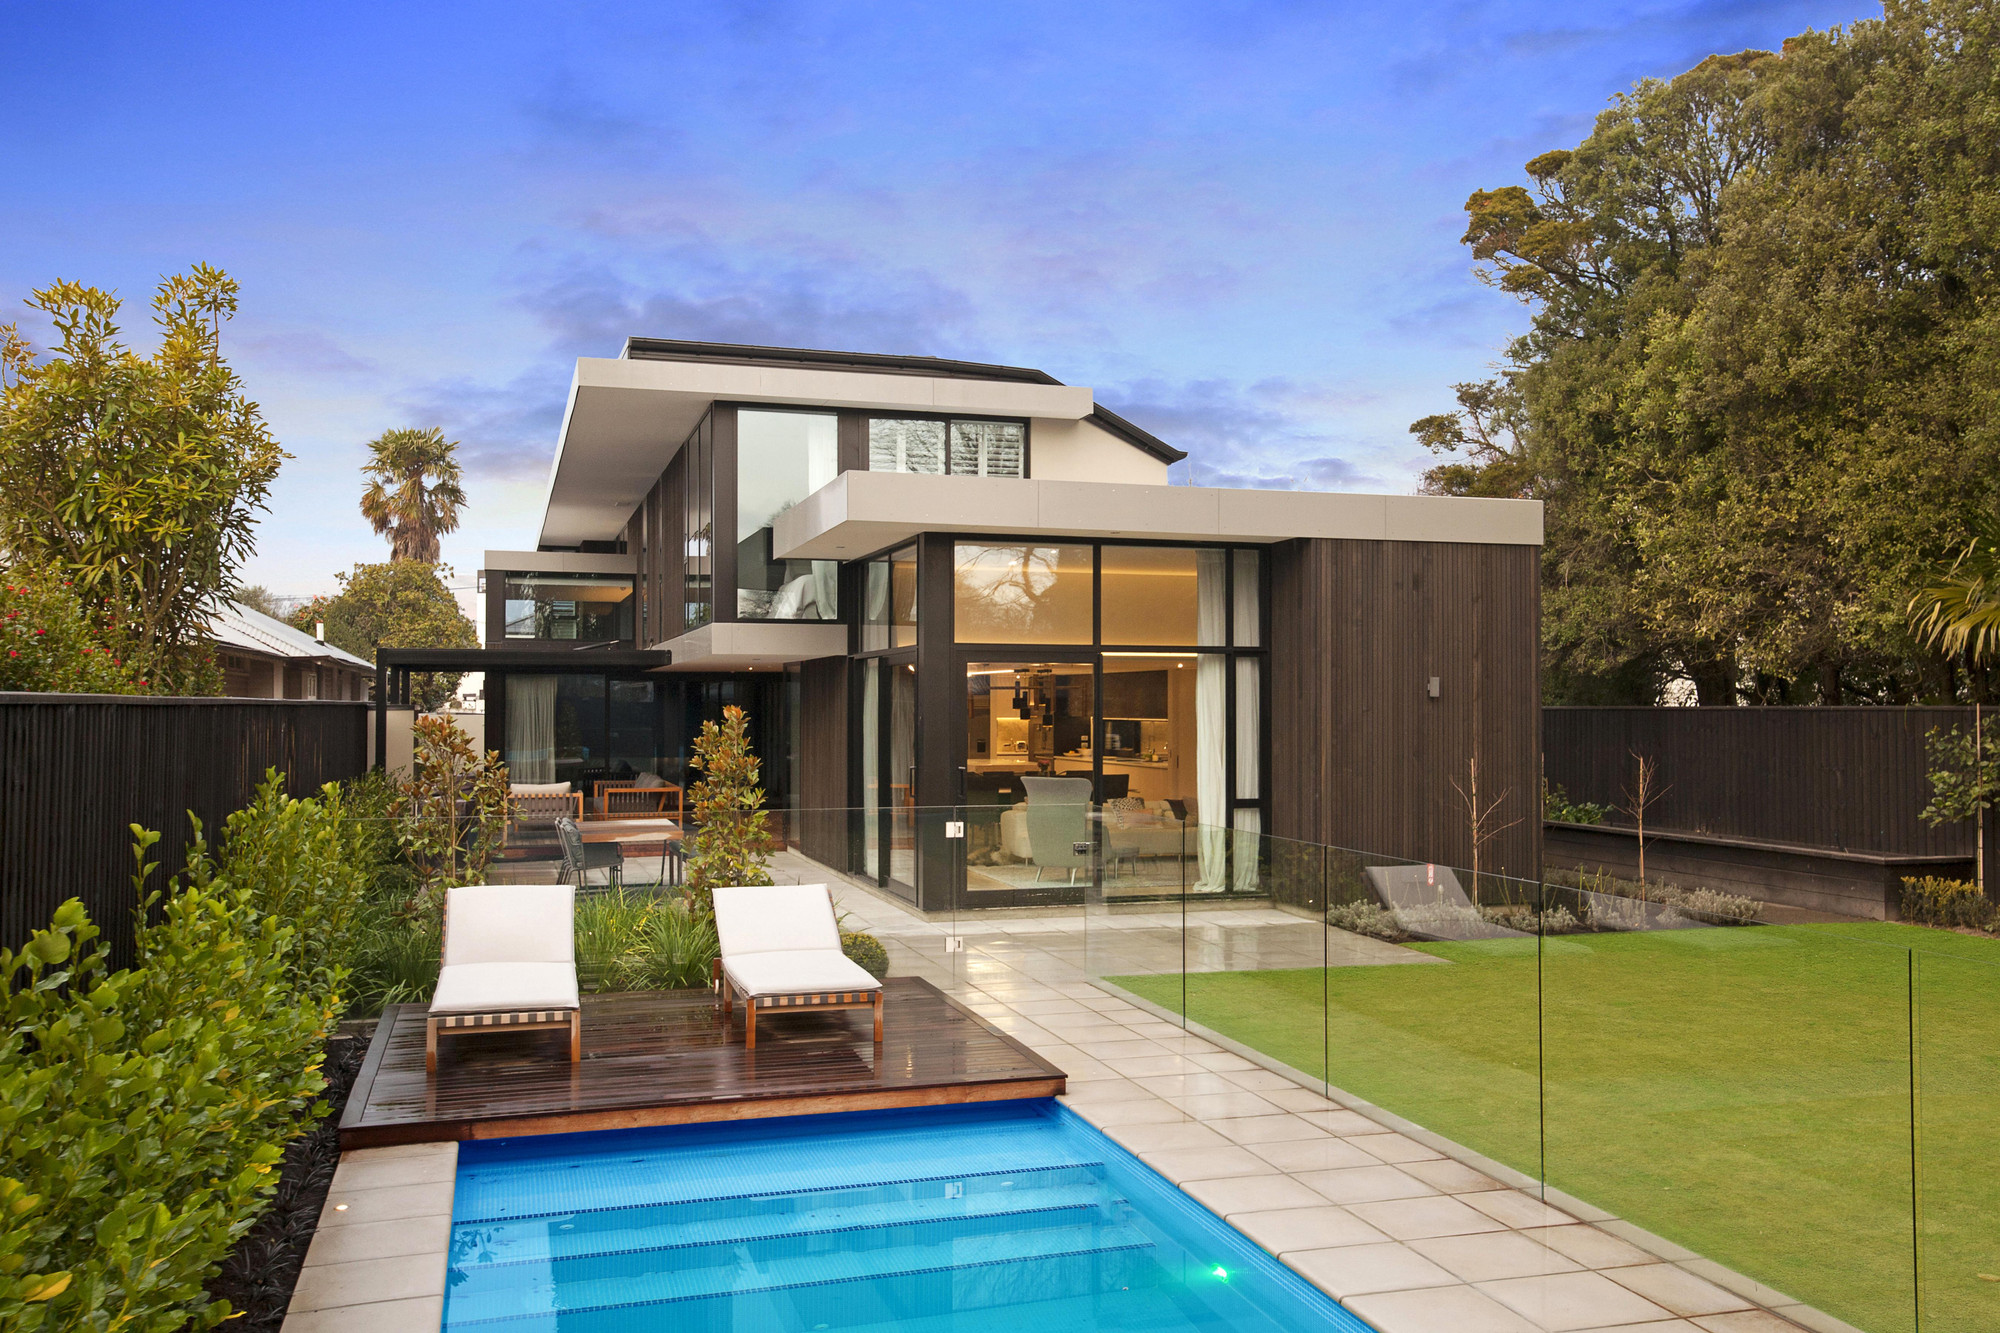 Christchurch city architectural build by O'Neil Architecture